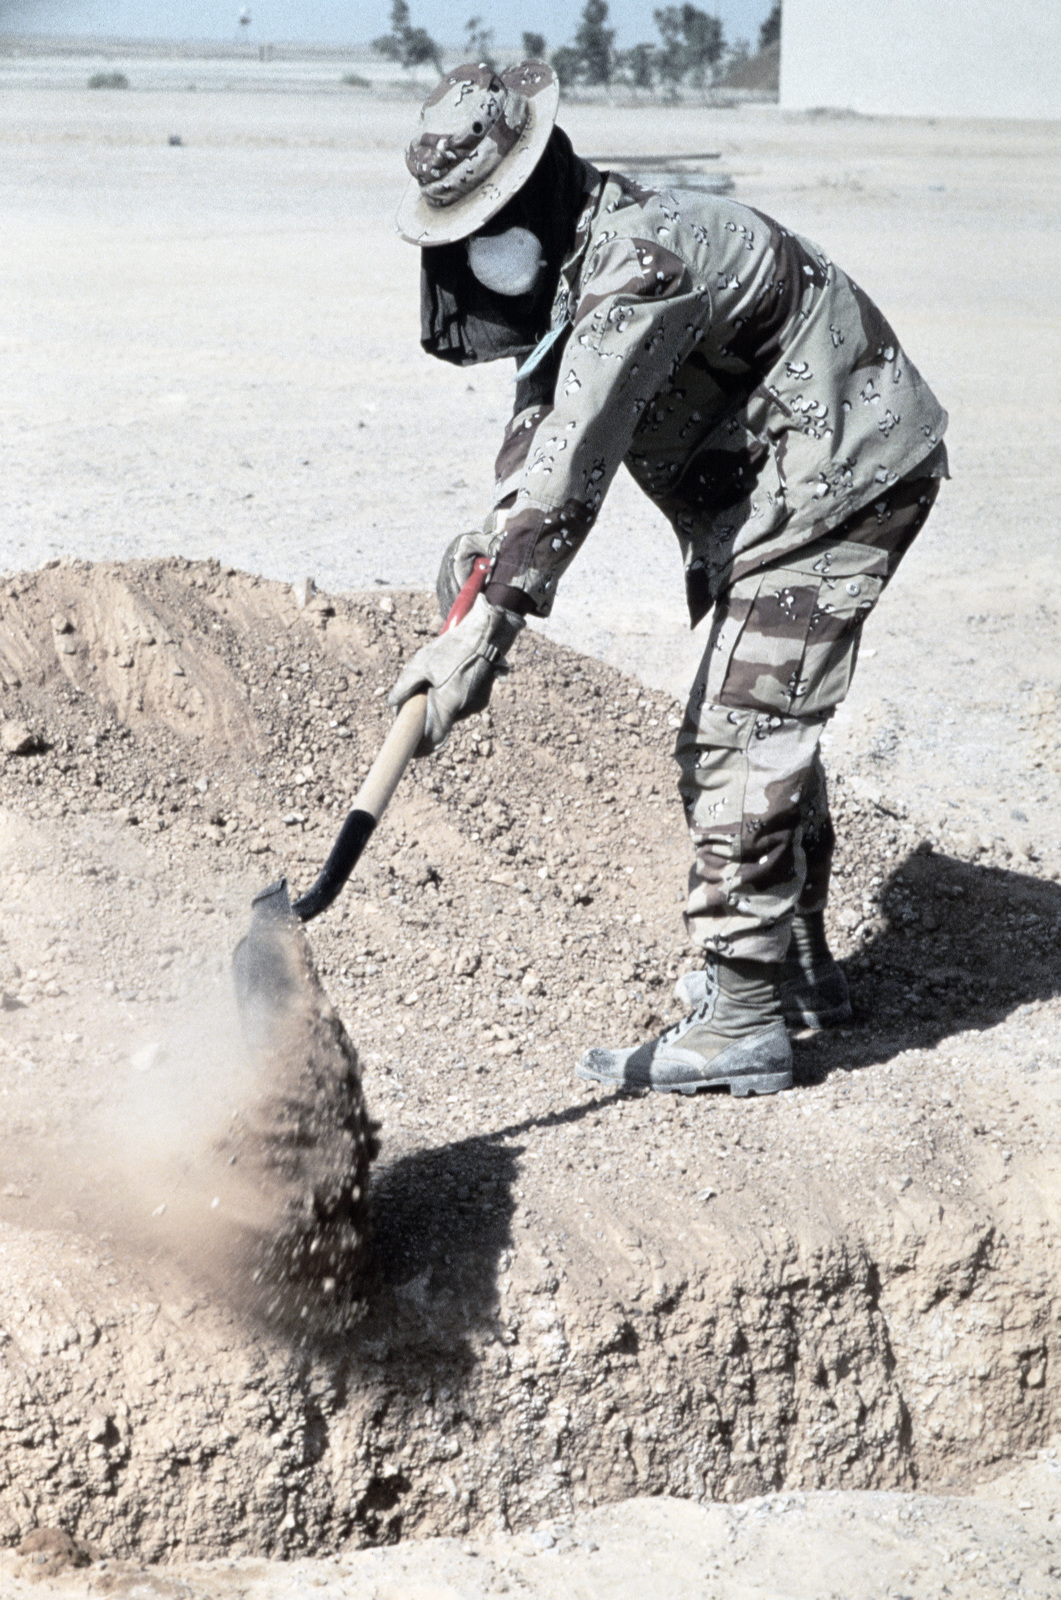 Sergeant (SGT) Bruce Gibson of the 56th Medical Squadron shovels dirt to fill in a field latrine during Exercise SHADOW HAWK'87.  In this US Central Command/Joint Chiefs of STAFF exercise, US forces operate with the Jordanian military in a desert environm